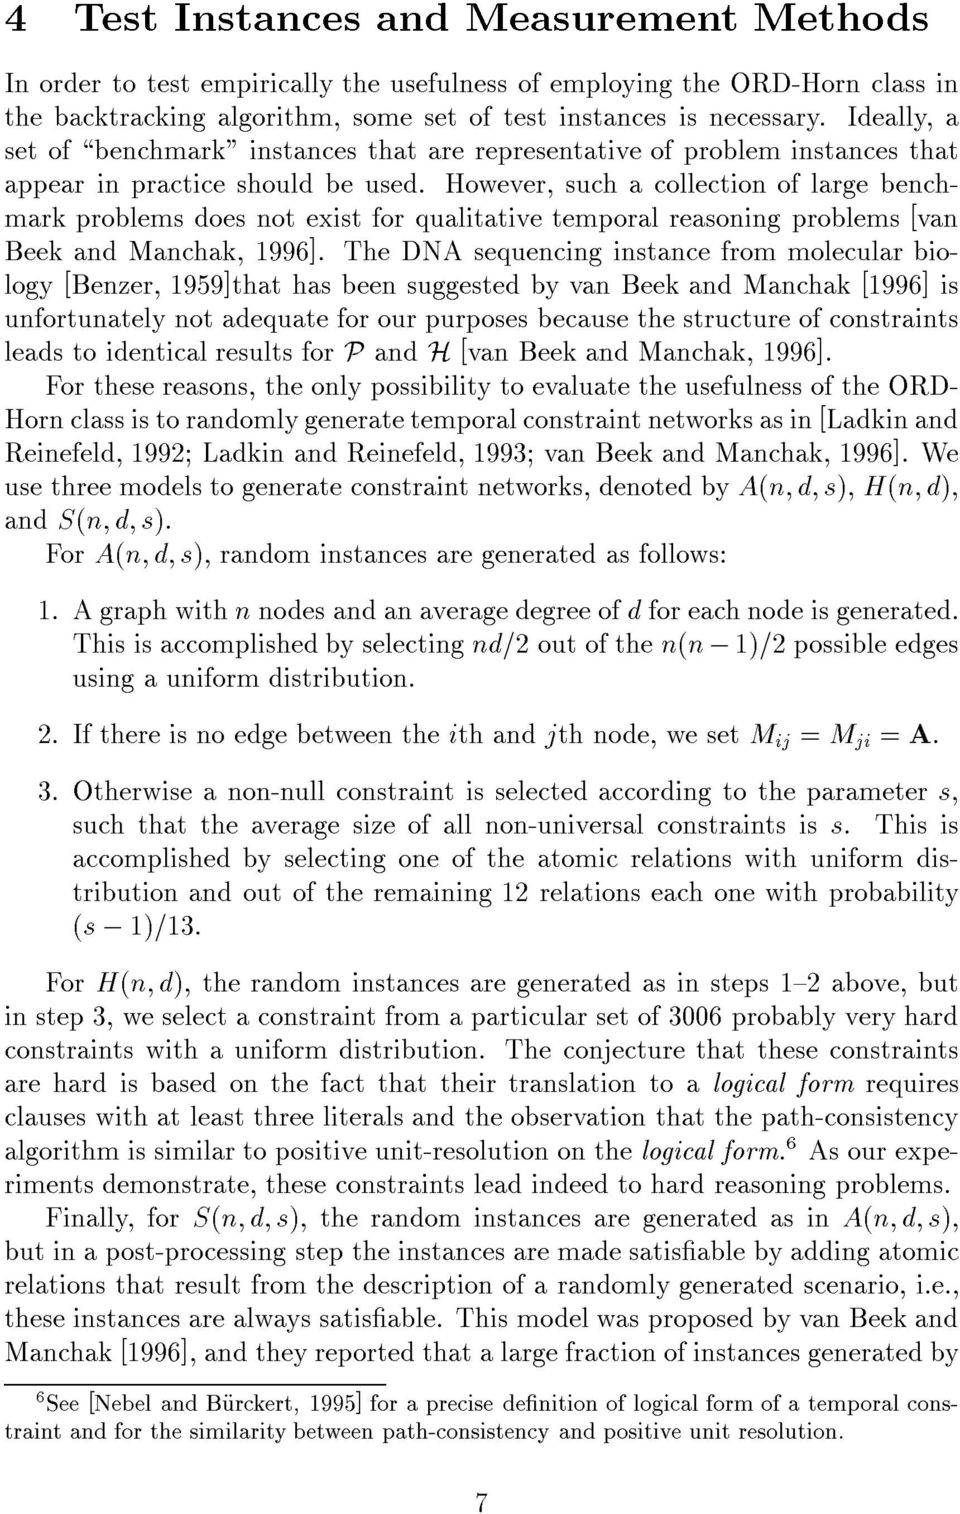 However, such a collection of large benchmark problems does not exist for qualitative temporal reasoning problems [van Beek and Manchak, 1996].